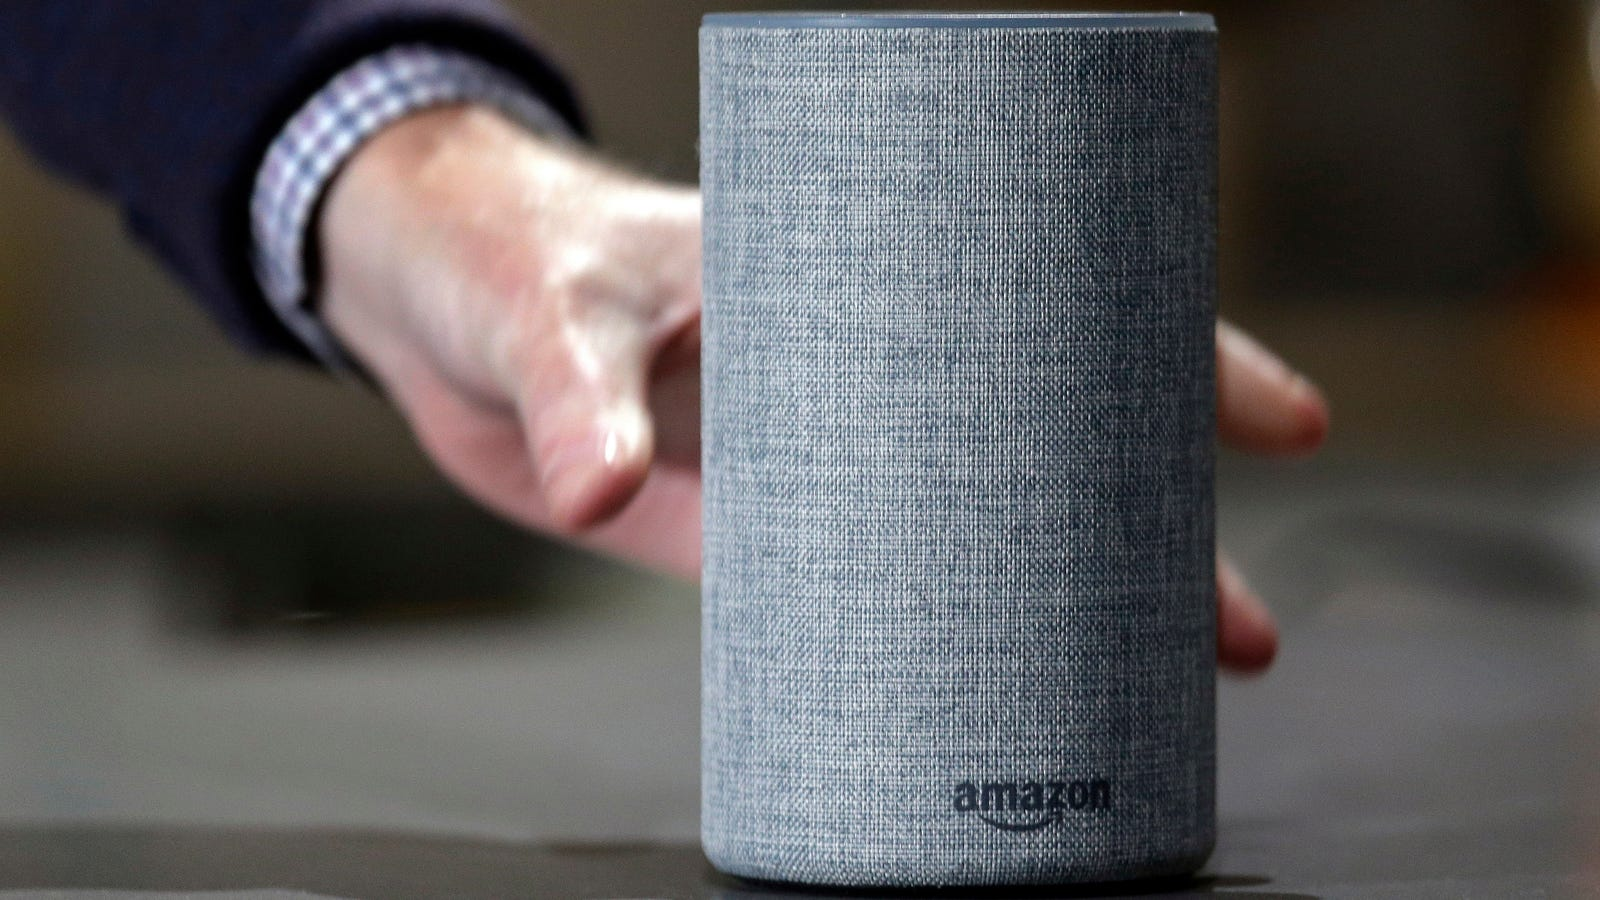 QnA VBage Amazon's Human Helpers Are Quietly Listening in on Some Alexa Recordings